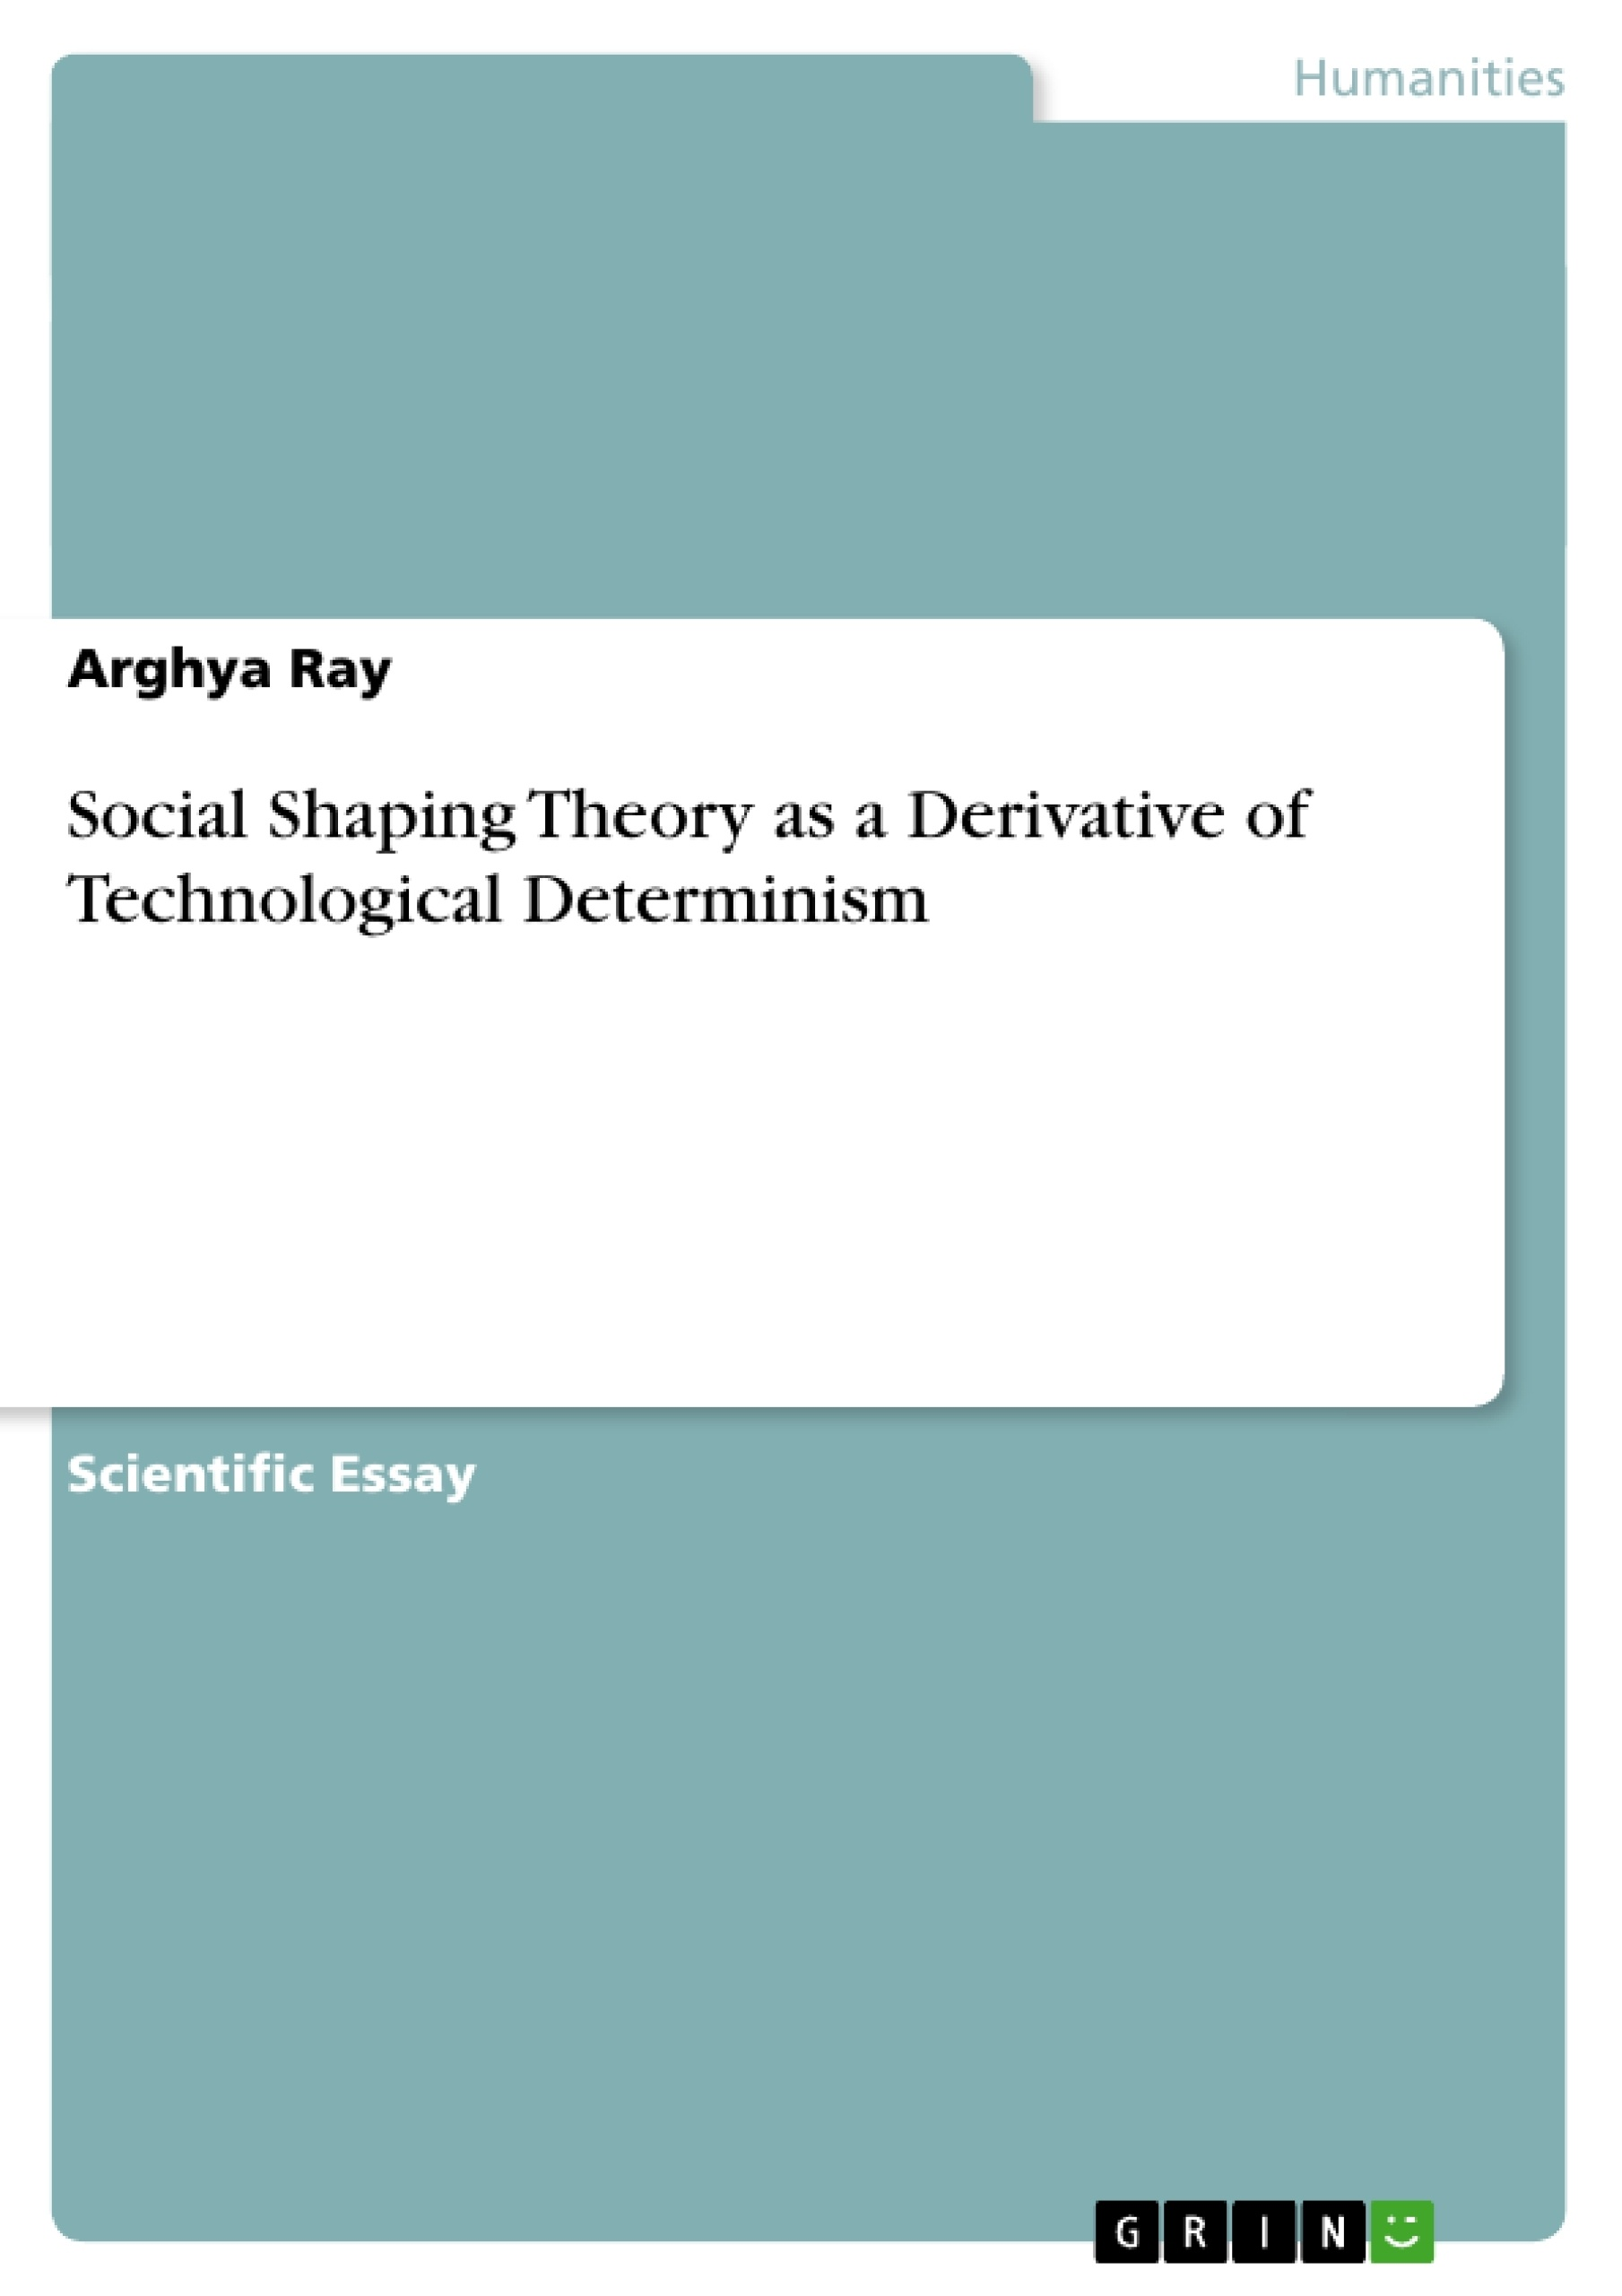 technological determinism thesis Category:theories of history  staples thesis stranger king t technological determinism technological revolution technology and society.